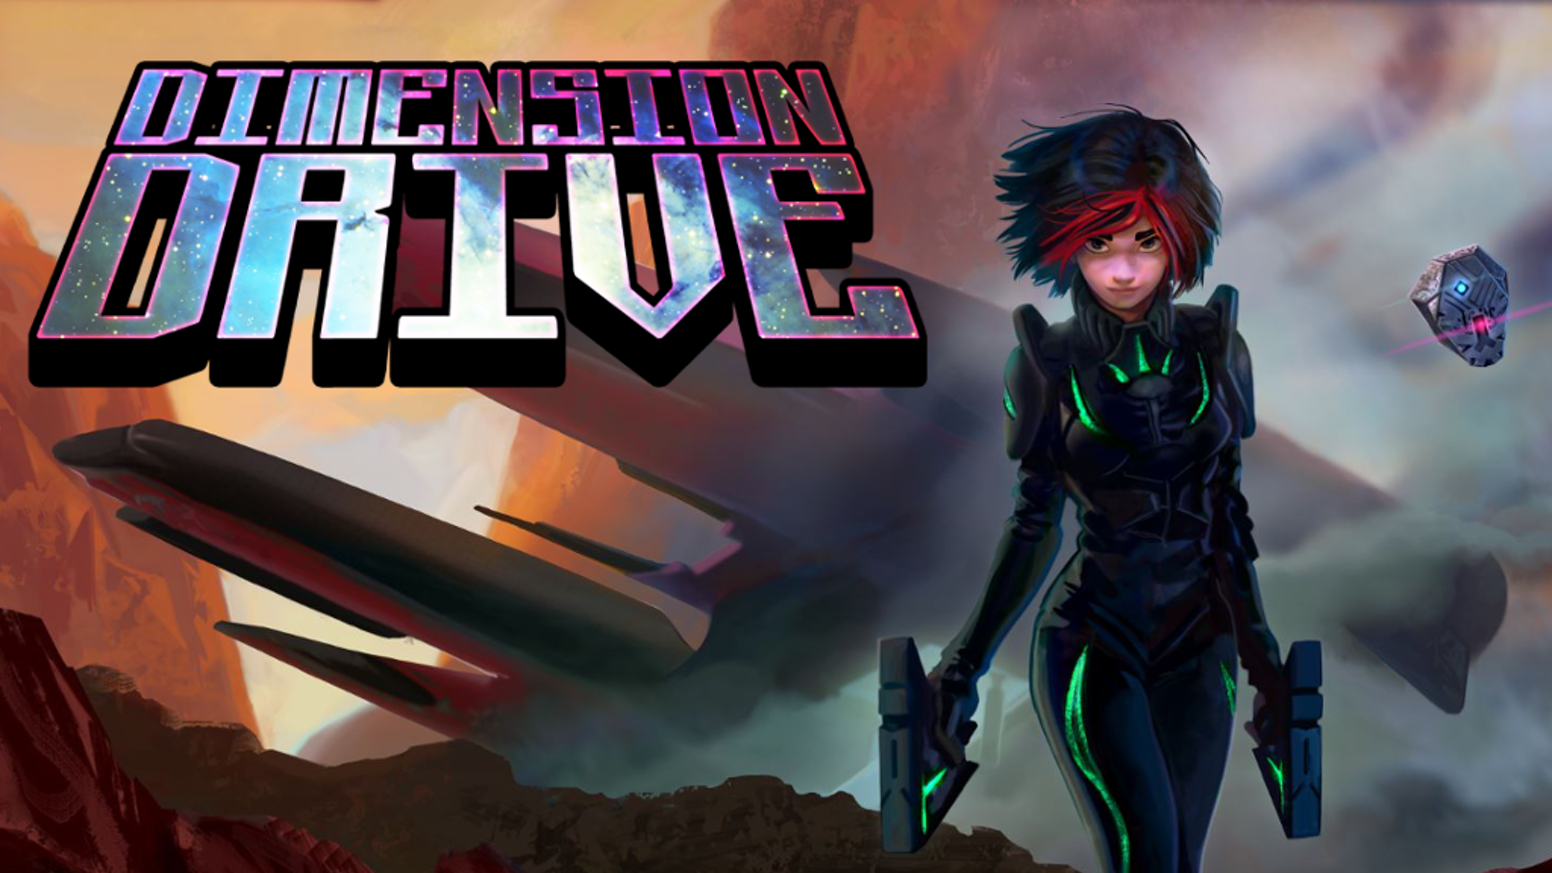 Teleport between two battlefields and fight your way in this comic book style sci-fi adventure!